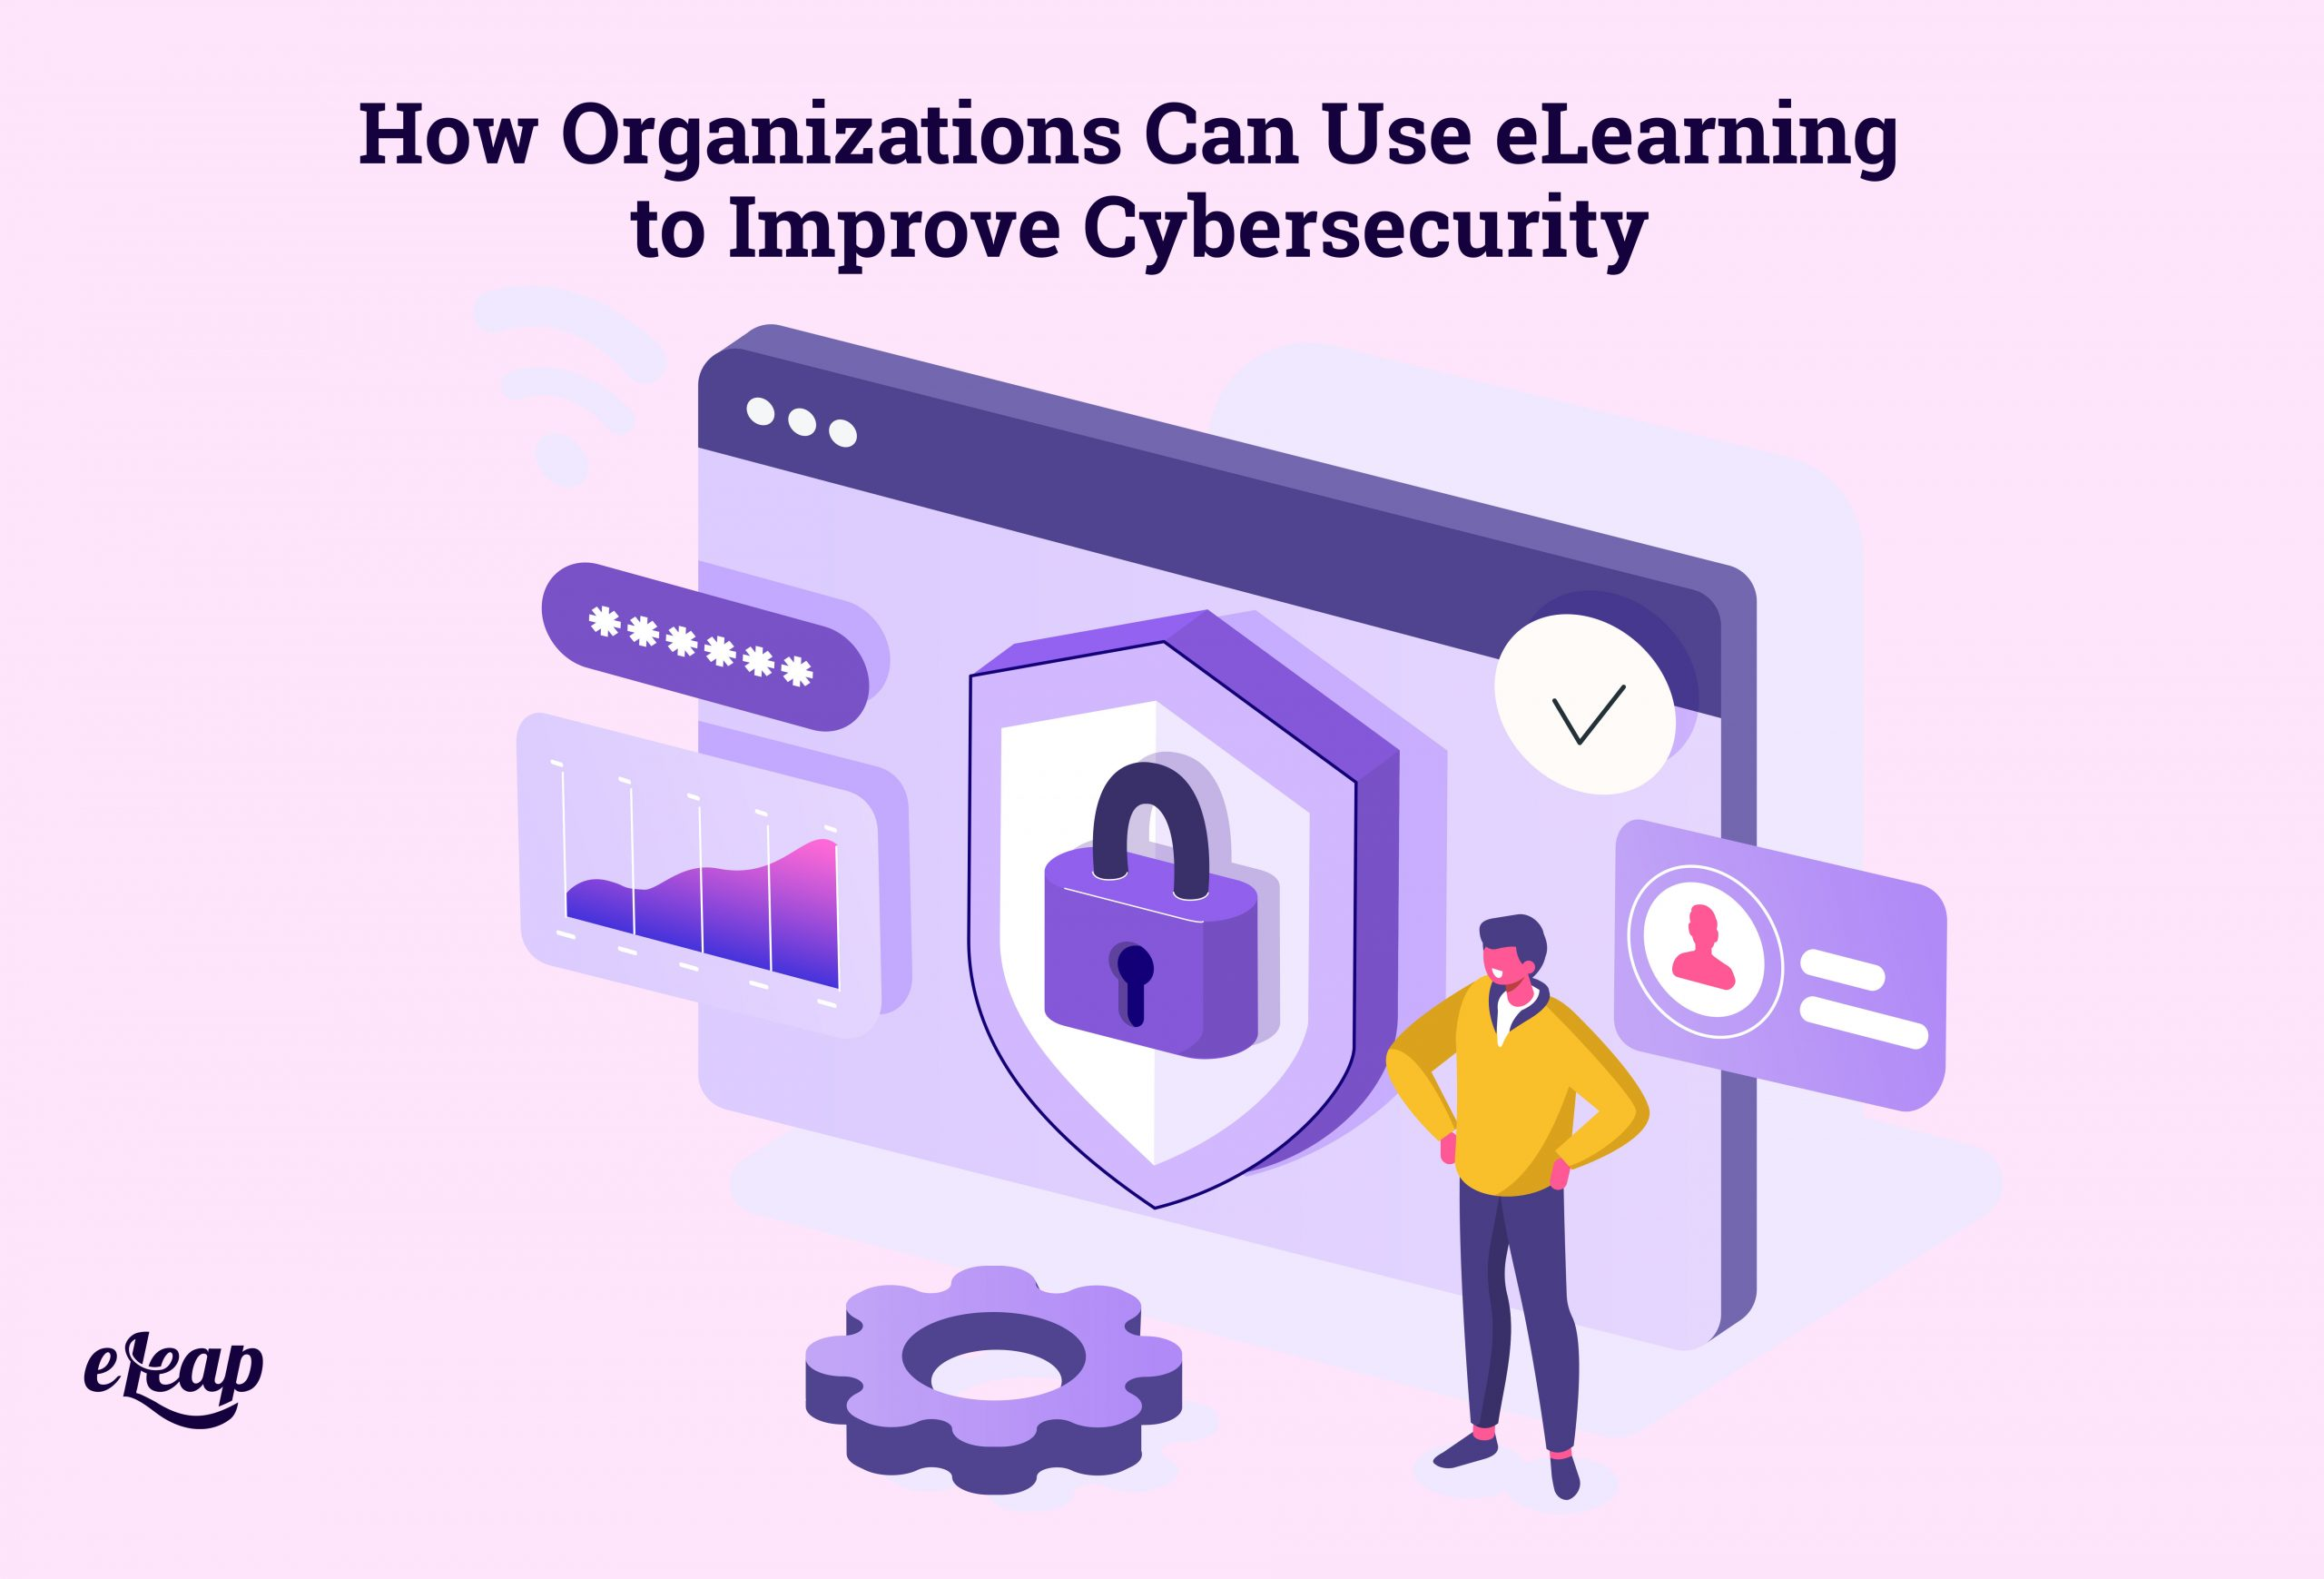 How Organizations Can Use eLearning to Improve Cybersecurity